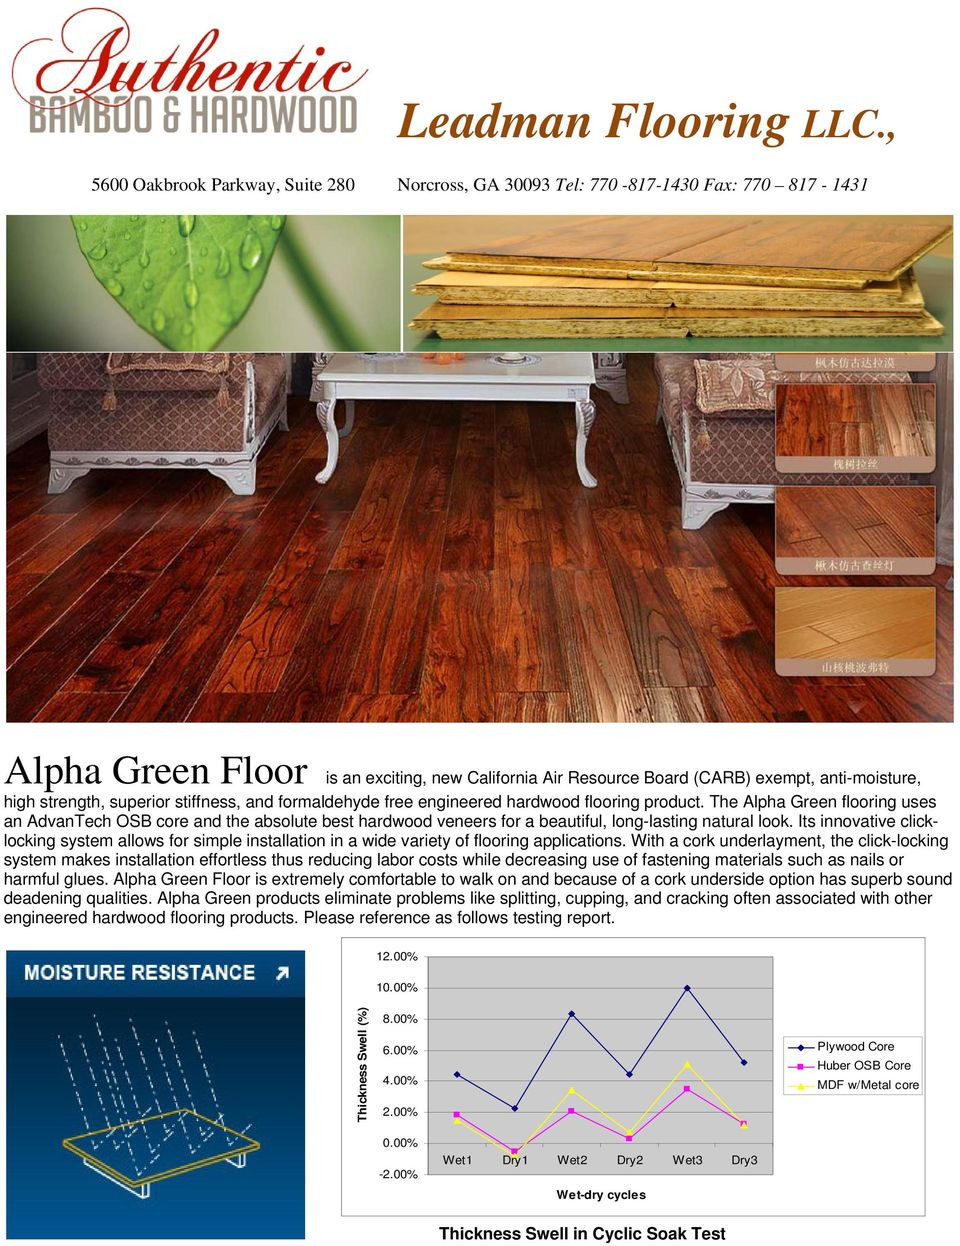 12 Recommended How to Install Hardwood Floors On Wood Subfloor 2021 free download how to install hardwood floors on wood subfloor of leadman flooring llc pdf inside strength superior stiffness and formaldehyde free engineered hardwood flooring product